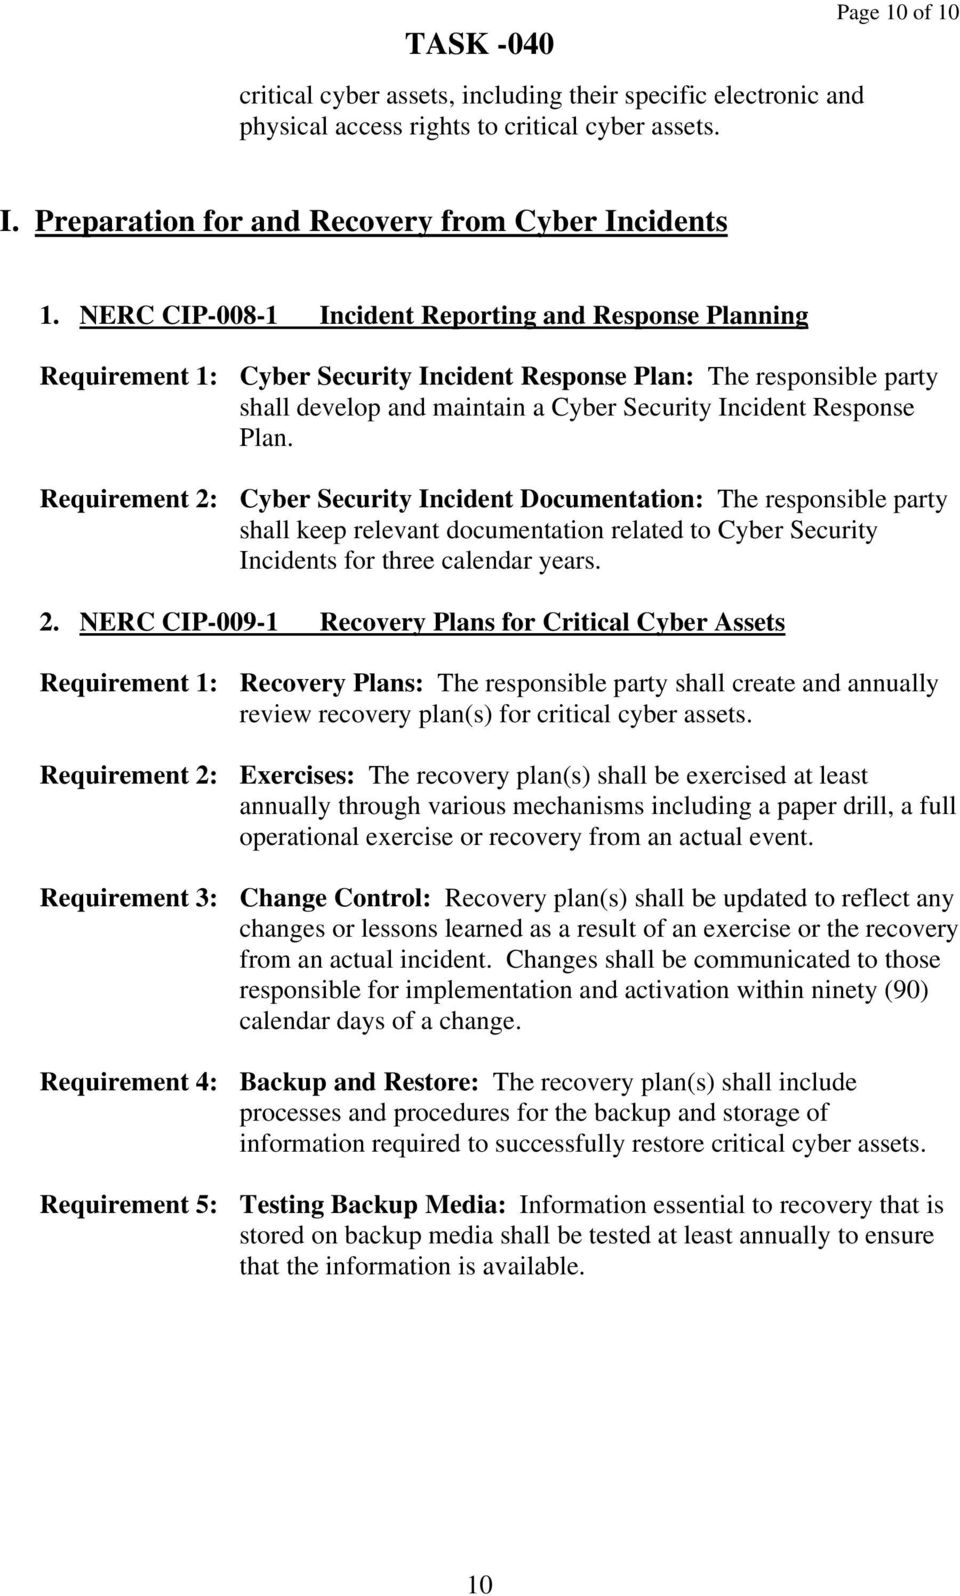 Requirement 2: Cyber Security Incident Documentation: The responsible party shall keep relevant documentation related to Cyber Security Incidents for three calendar years. 2. NERC CIP-009-1 Recovery Plans for Critical Cyber Assets Requirement 1: Recovery Plans: The responsible party shall create and annually review recovery plan(s) for critical cyber assets.